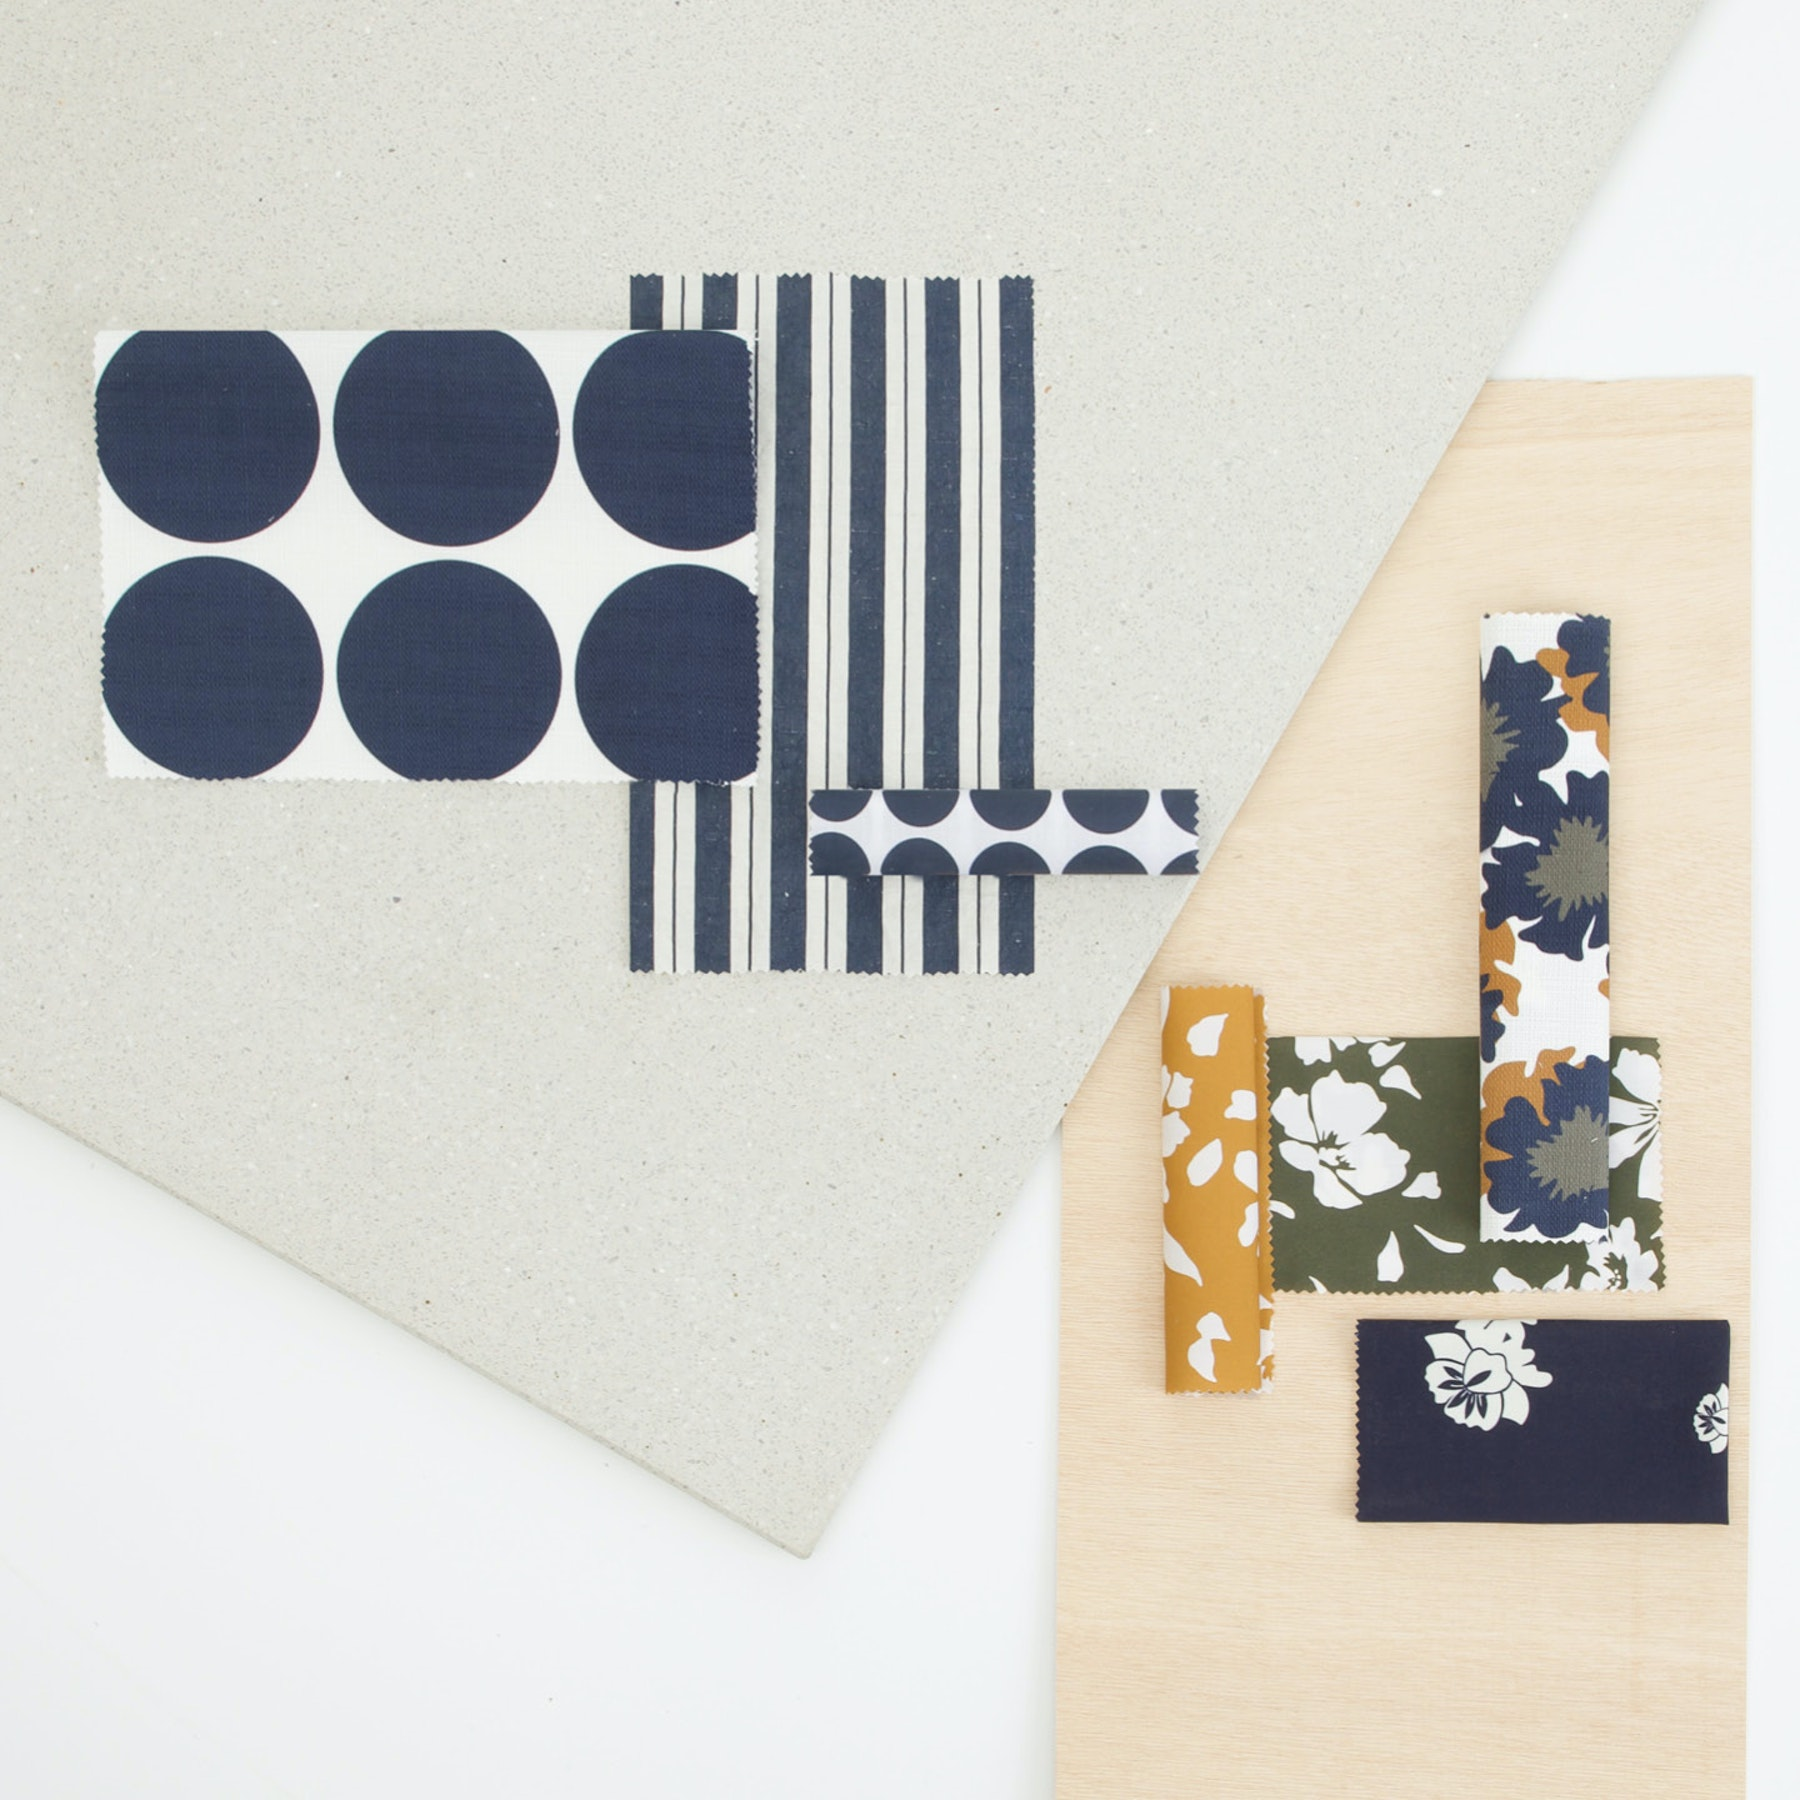 Statement Prints | Seidensticker